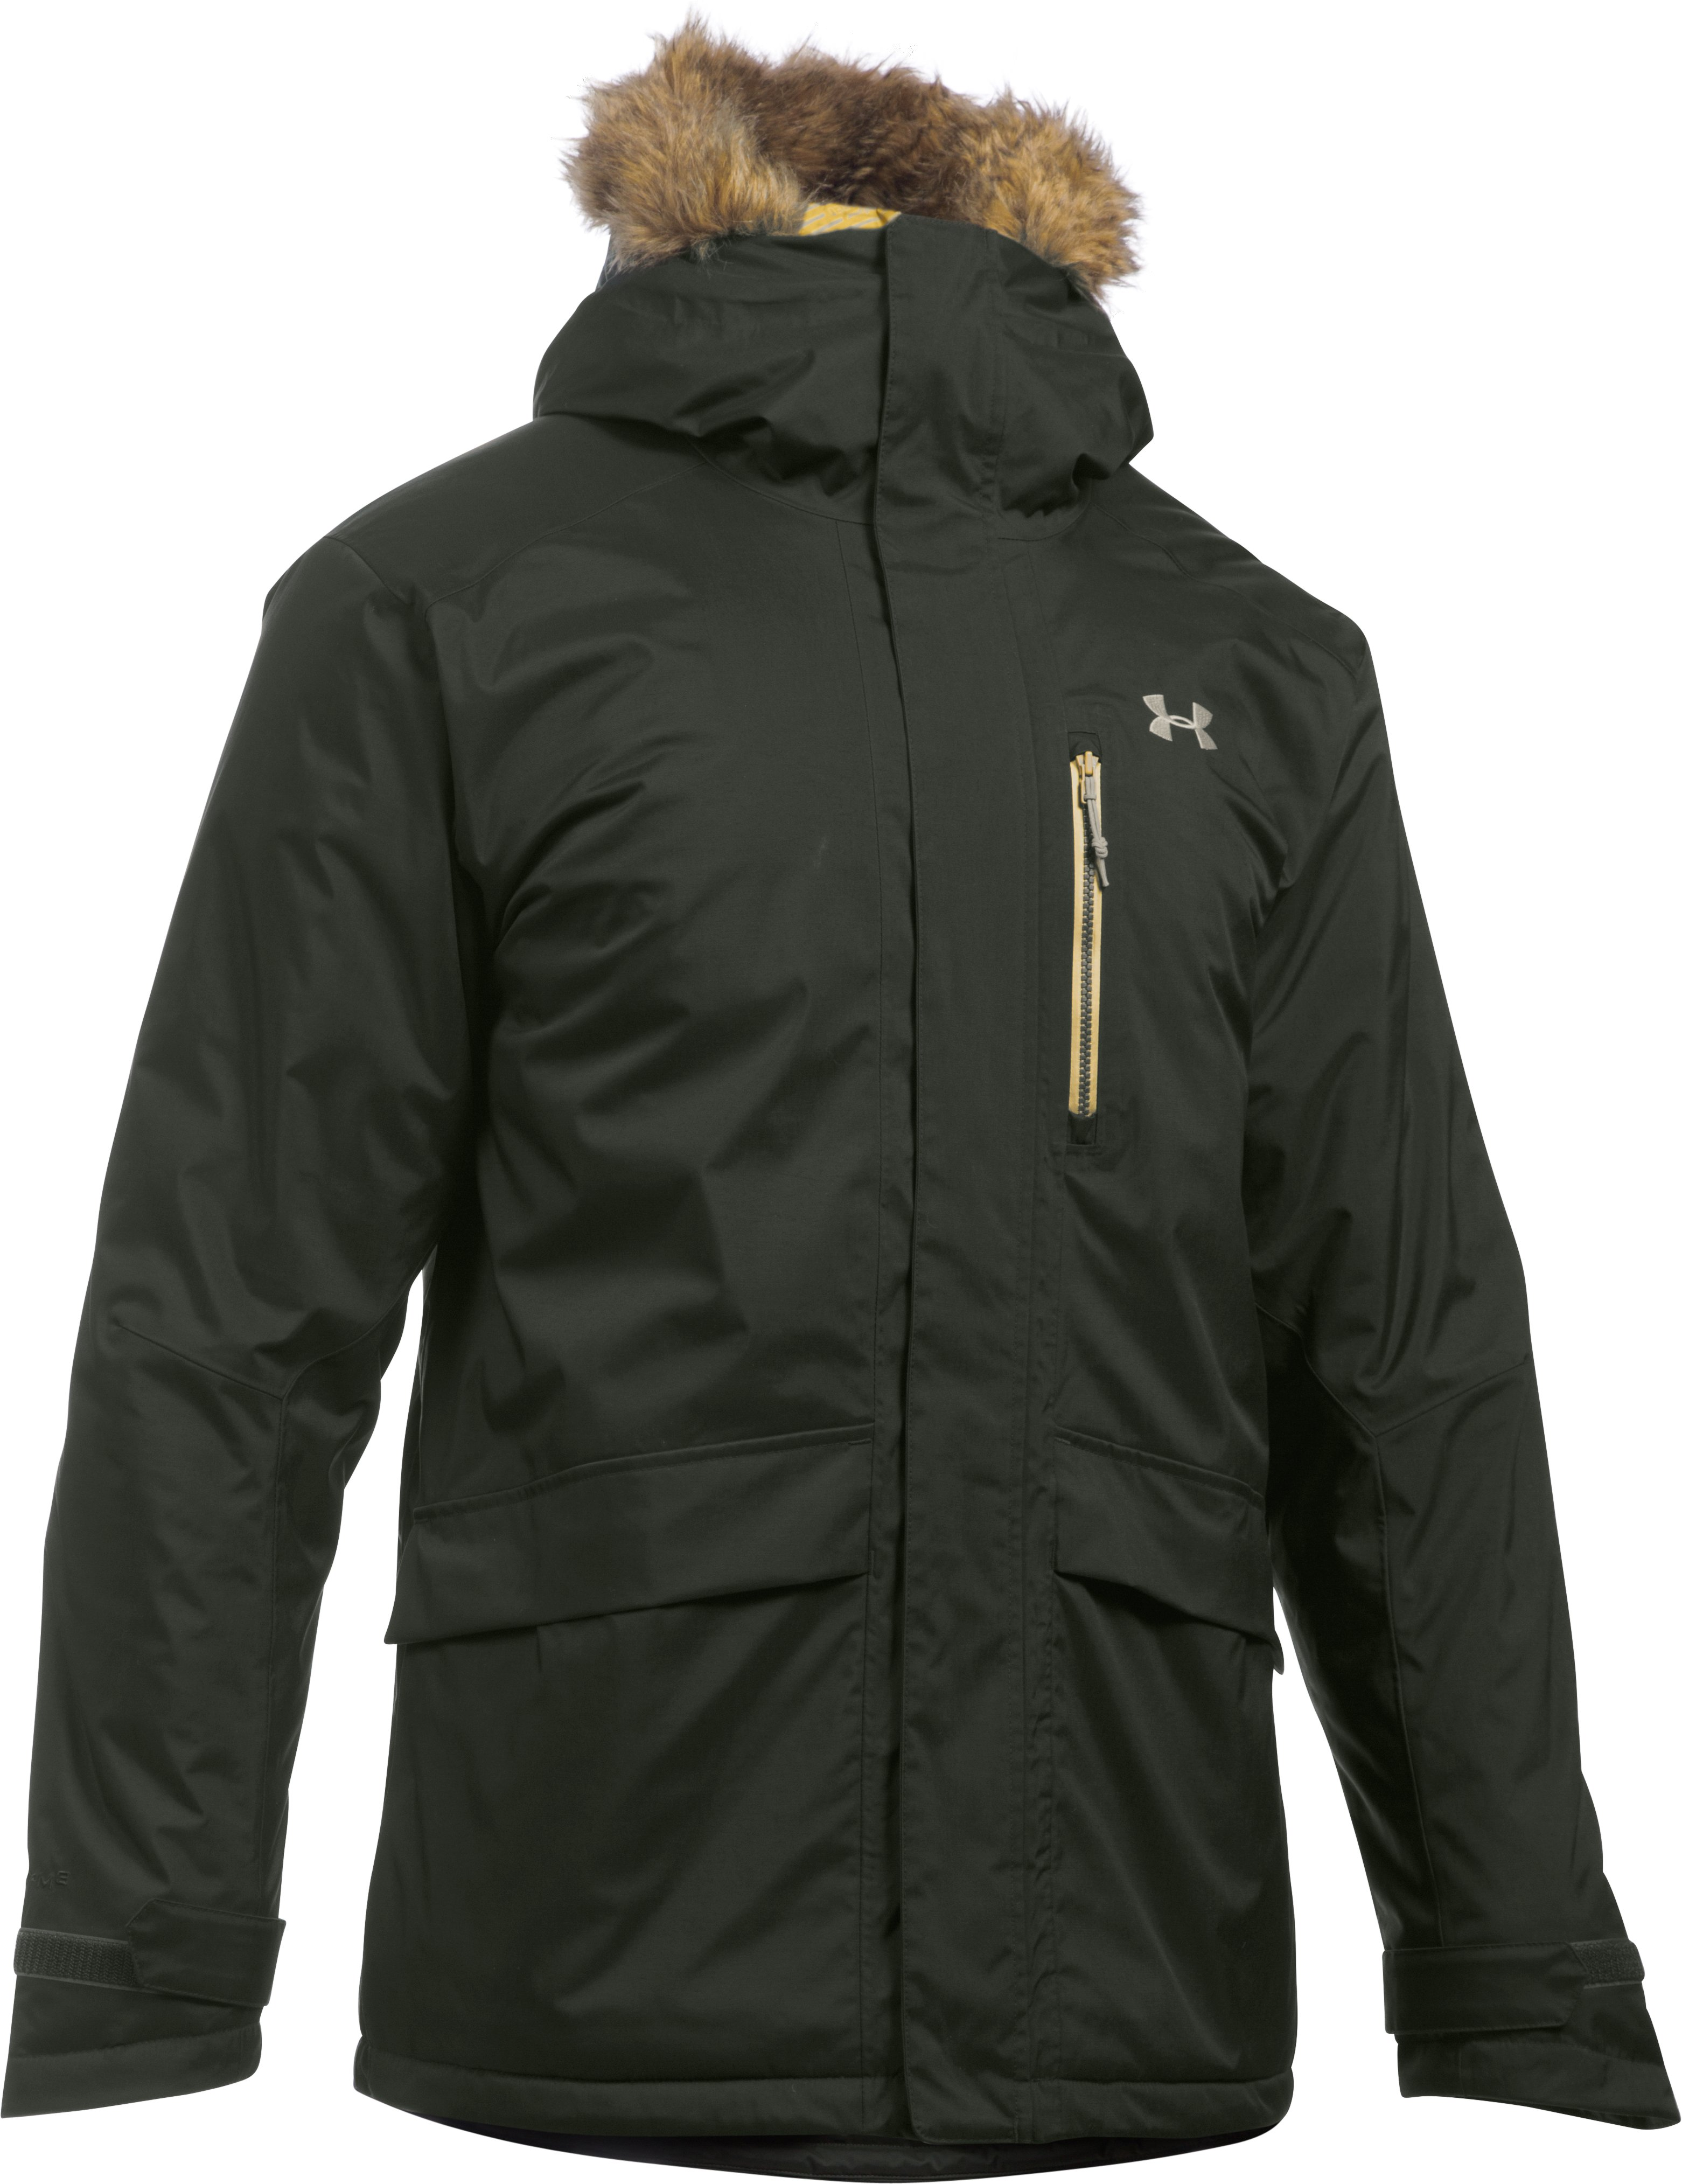 Men's ColdGear® Reactor Voltage Jacket, Artillery Green